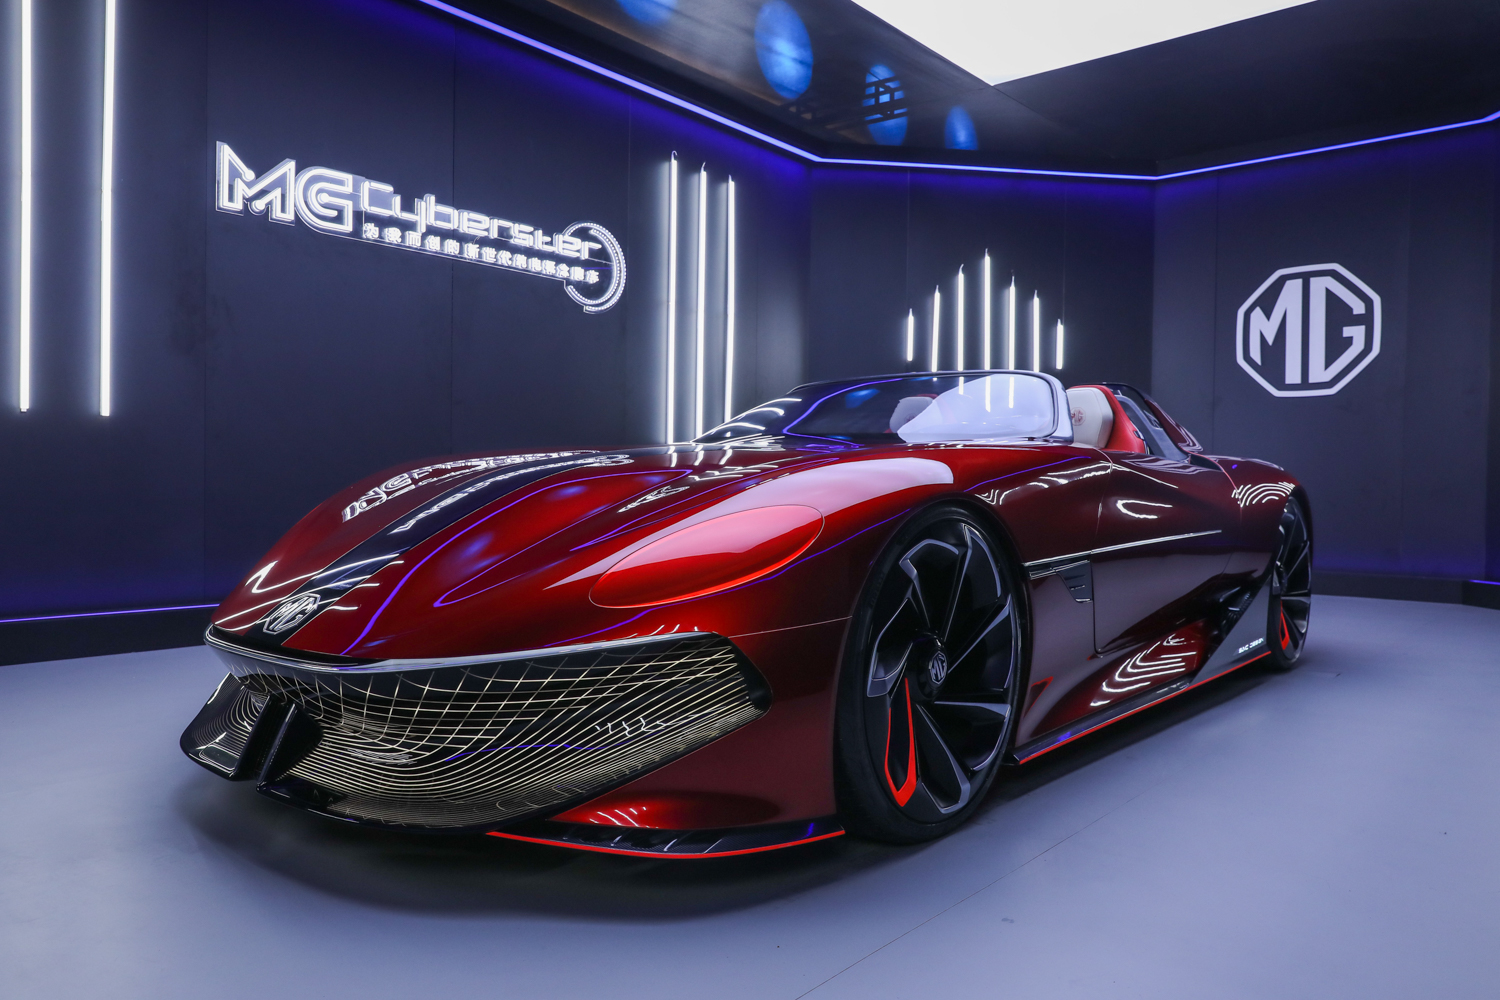 Car News | First photos of the MG Cyberster | CompleteCar.ie